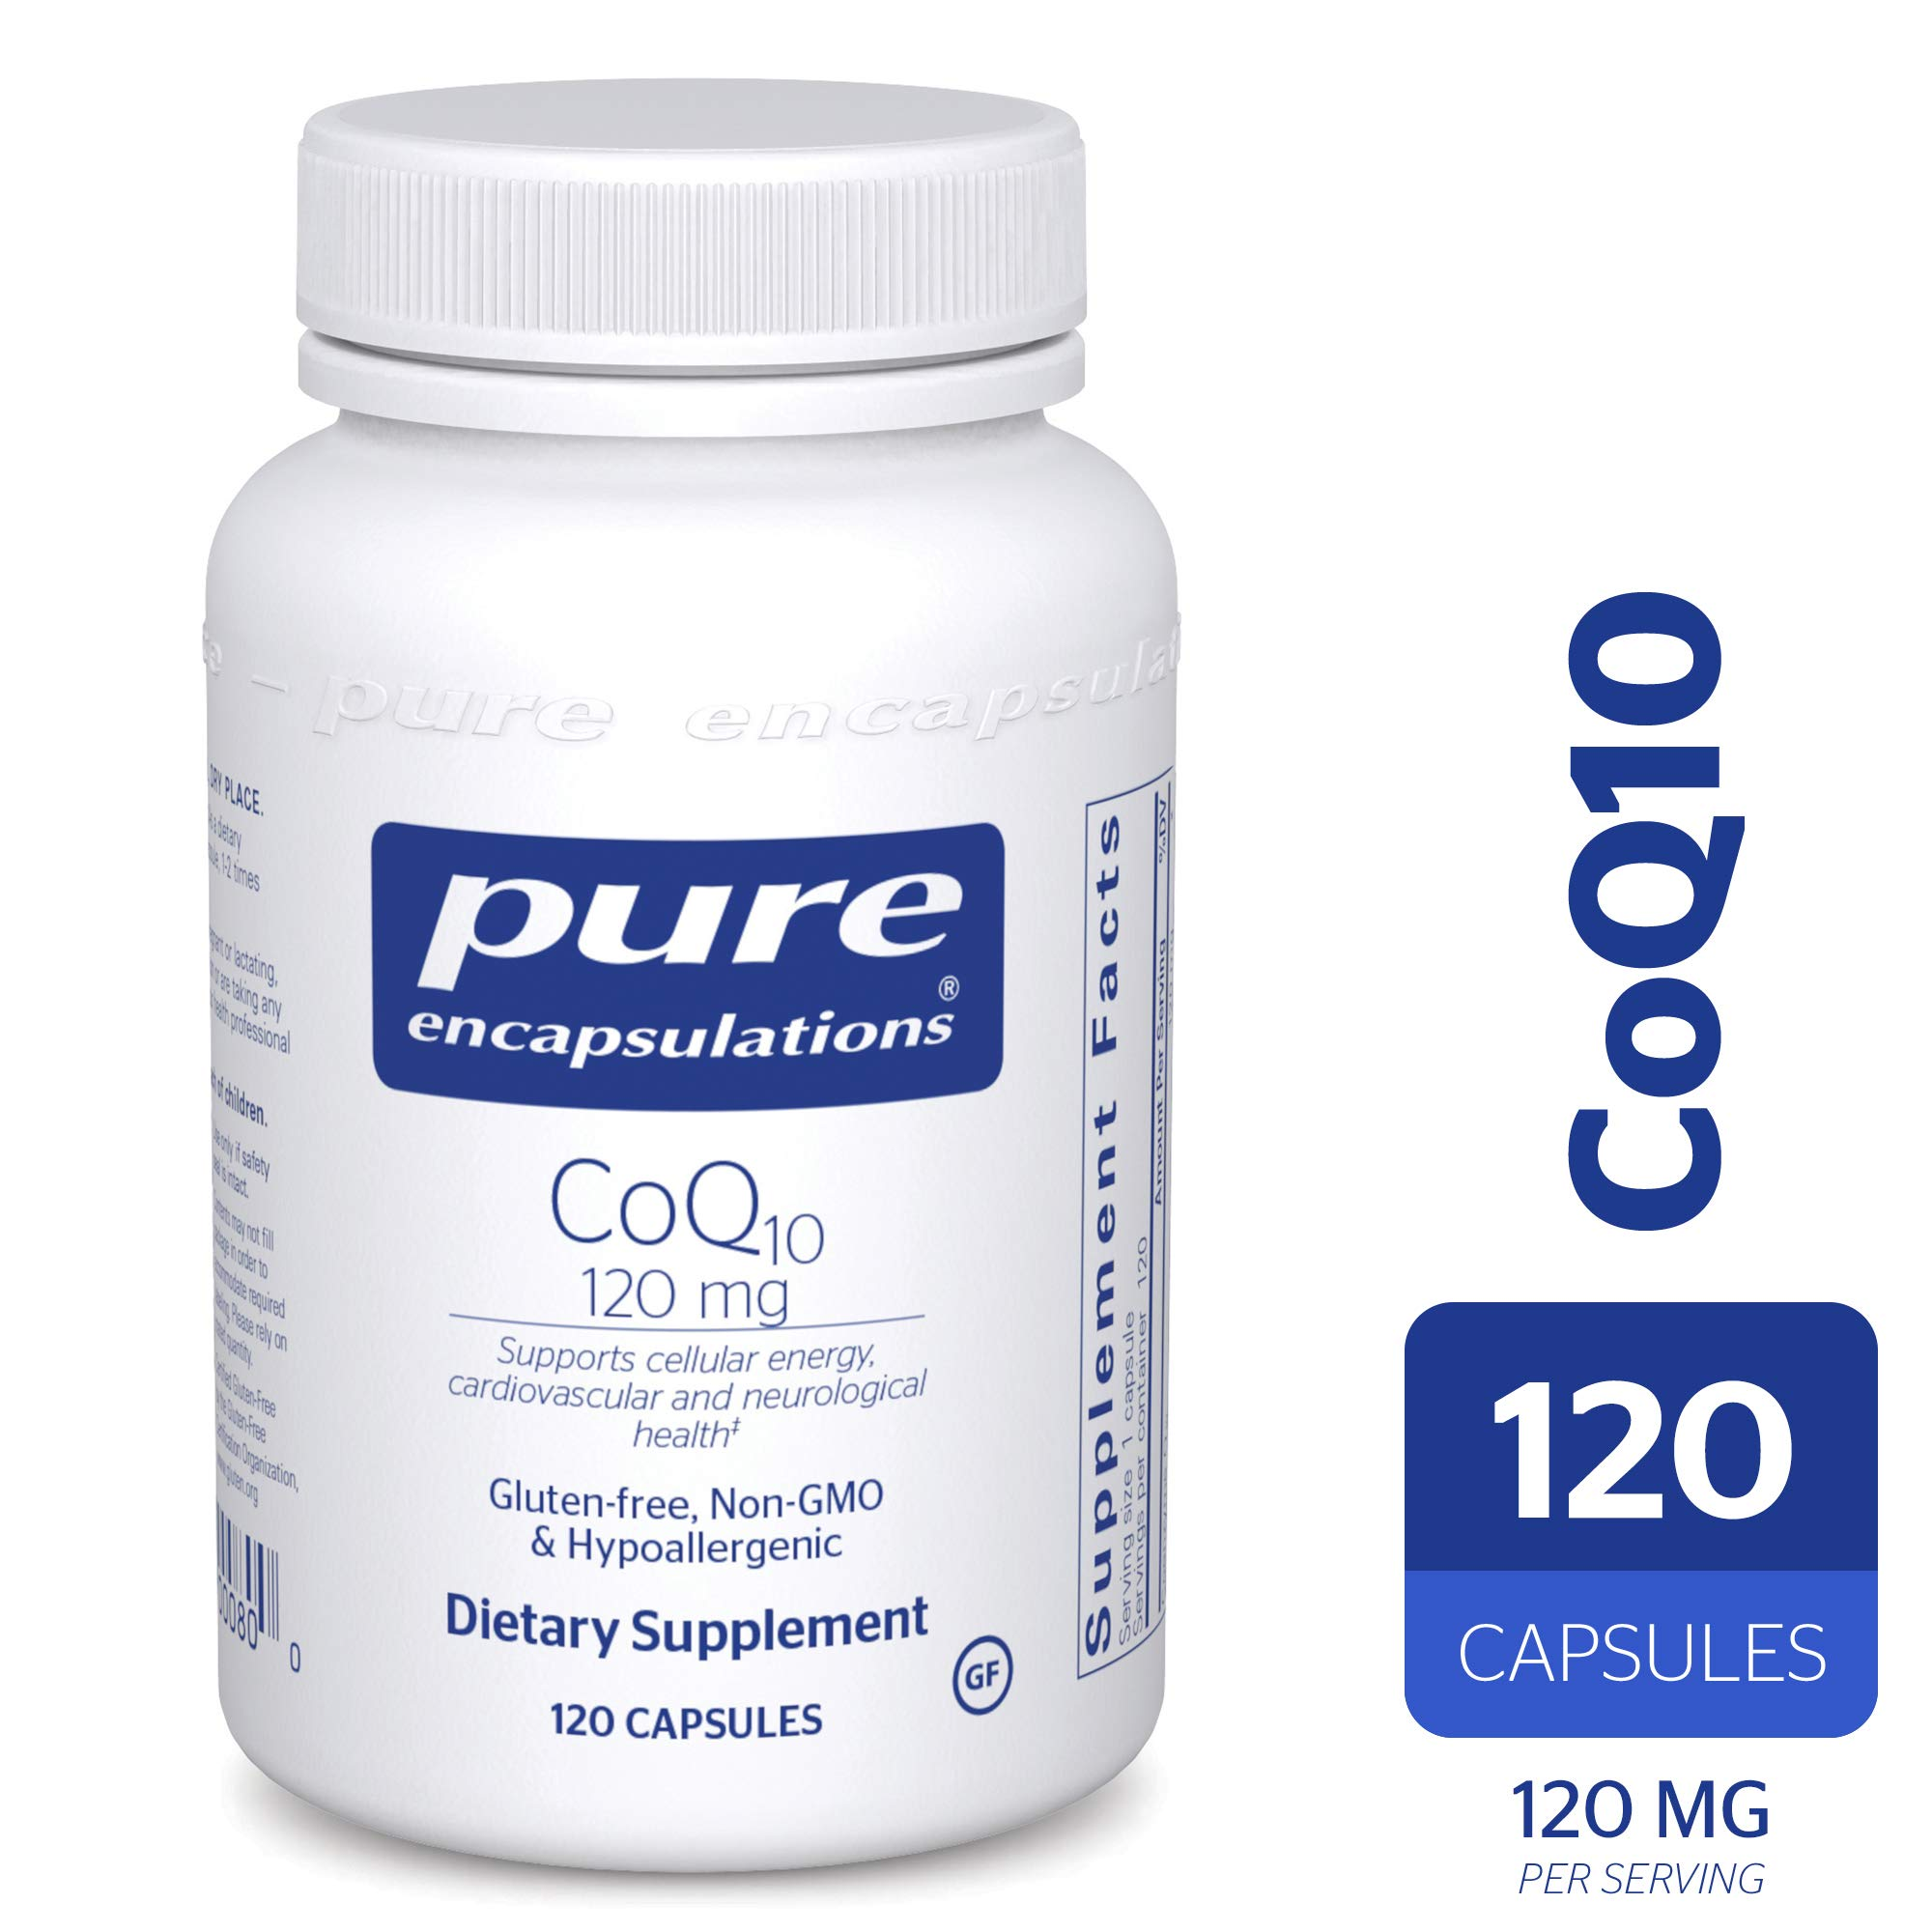 Pure Encapsulations - CoQ10 120 mg - Hypoallergenic Coenzyme Q10 Supplement - 120 Capsules